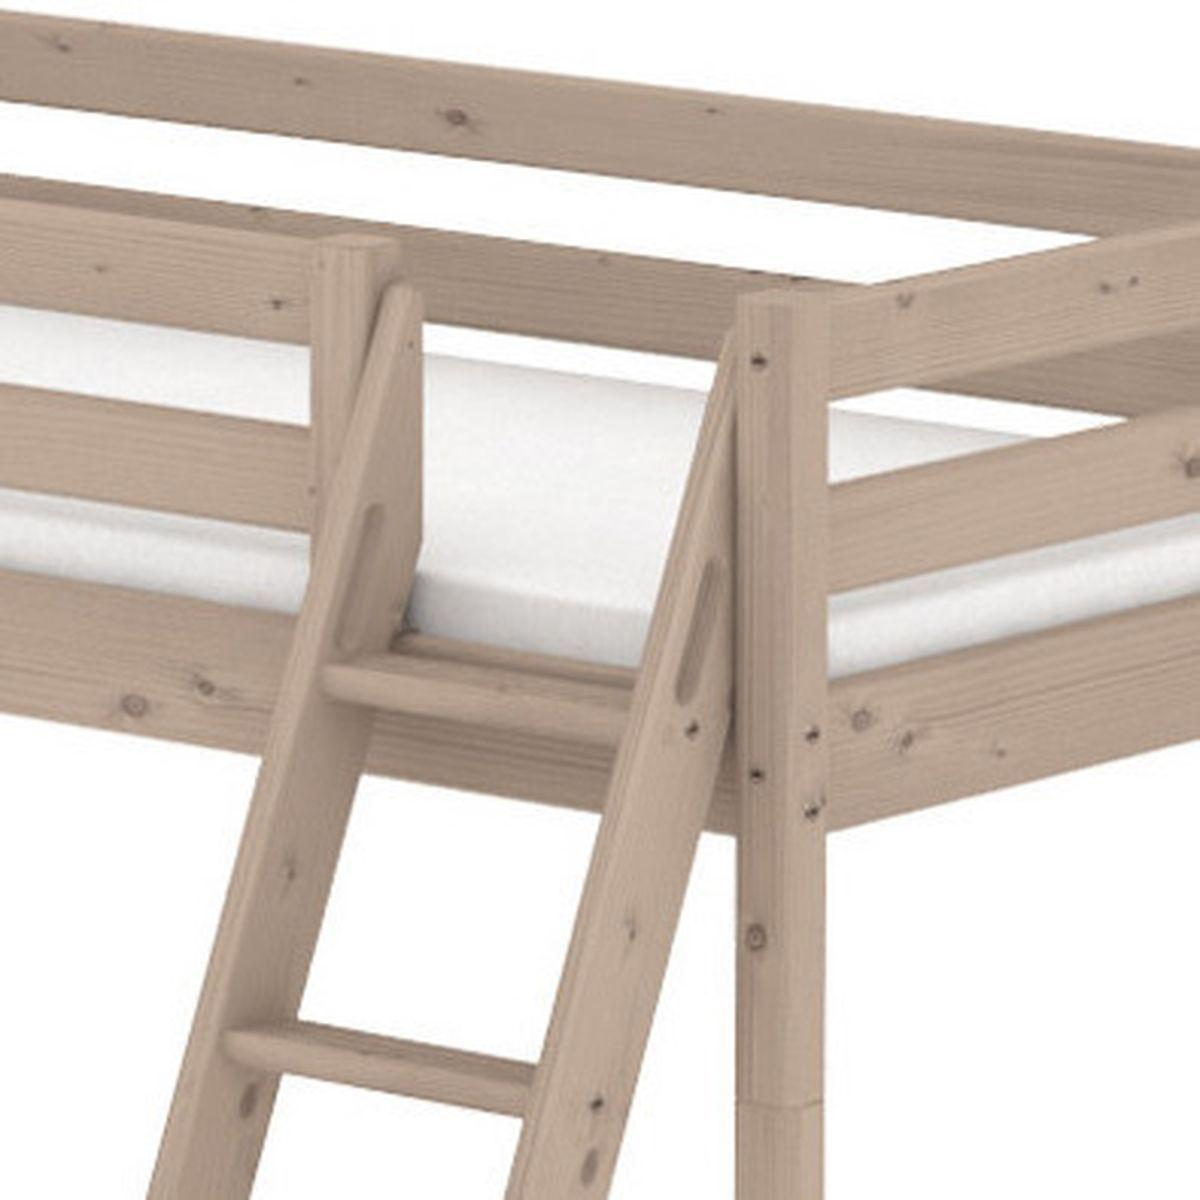 Cama media alta 90x200 CLASSIC Flexa escalera inclinada terra